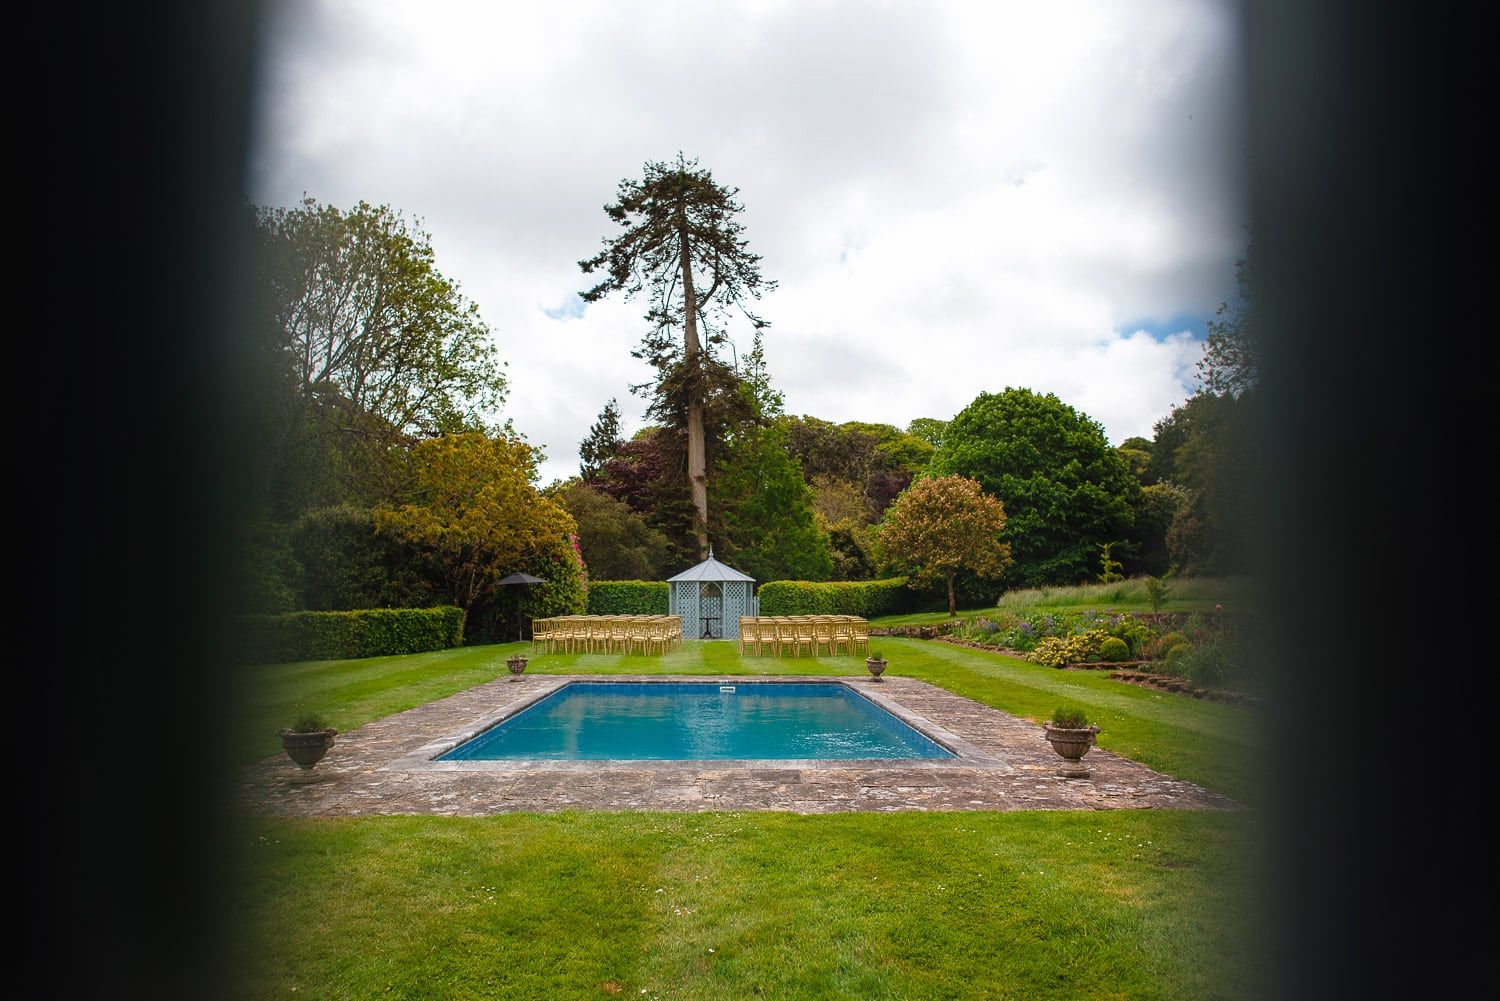 Swimming pool and garden at wedding venue